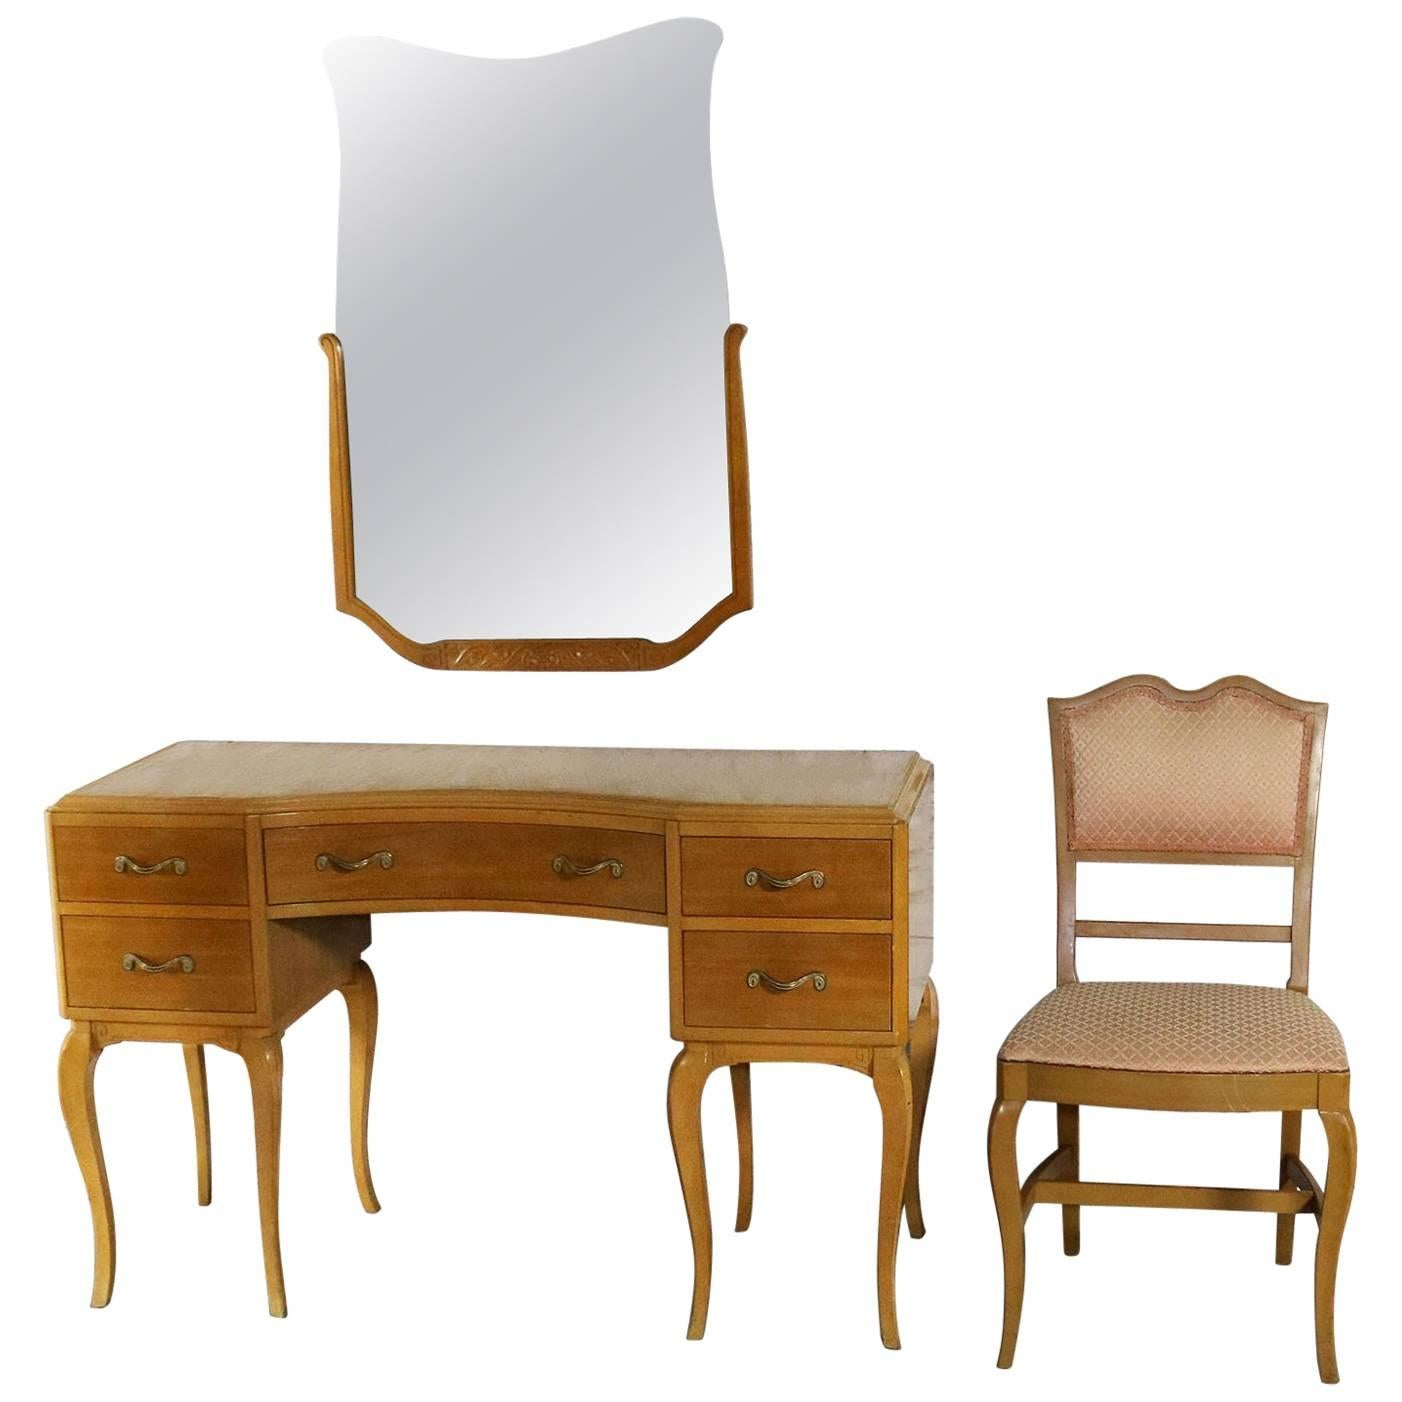 Deco style furniture Paint Art Deco Style Vanity Mirror And Chair By Rway Northern Furniture Co Sheboygan For Sale House Design Interior Art Deco Style Vanity Mirror And Chair By Rway Northern Furniture Co